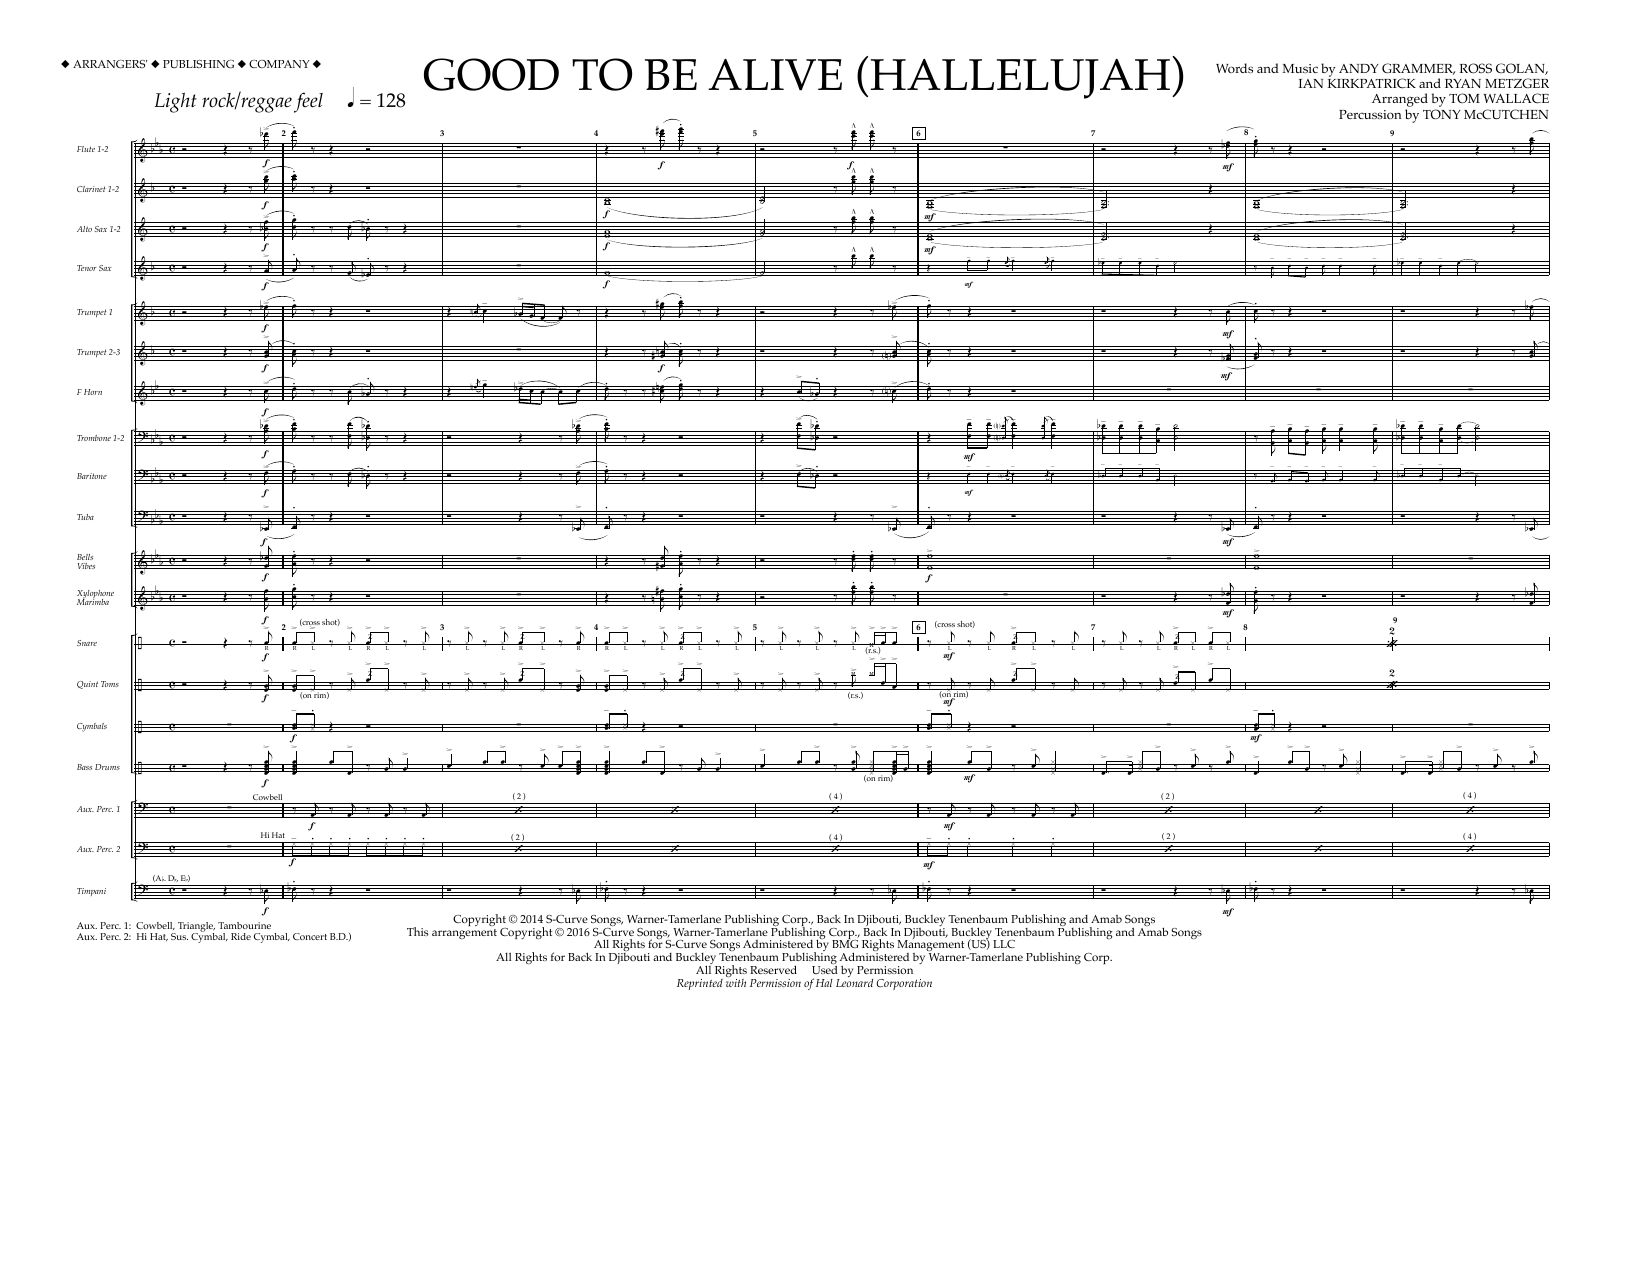 Andy Grammer - Good to Be Alive (Hallelujah) - Full Score